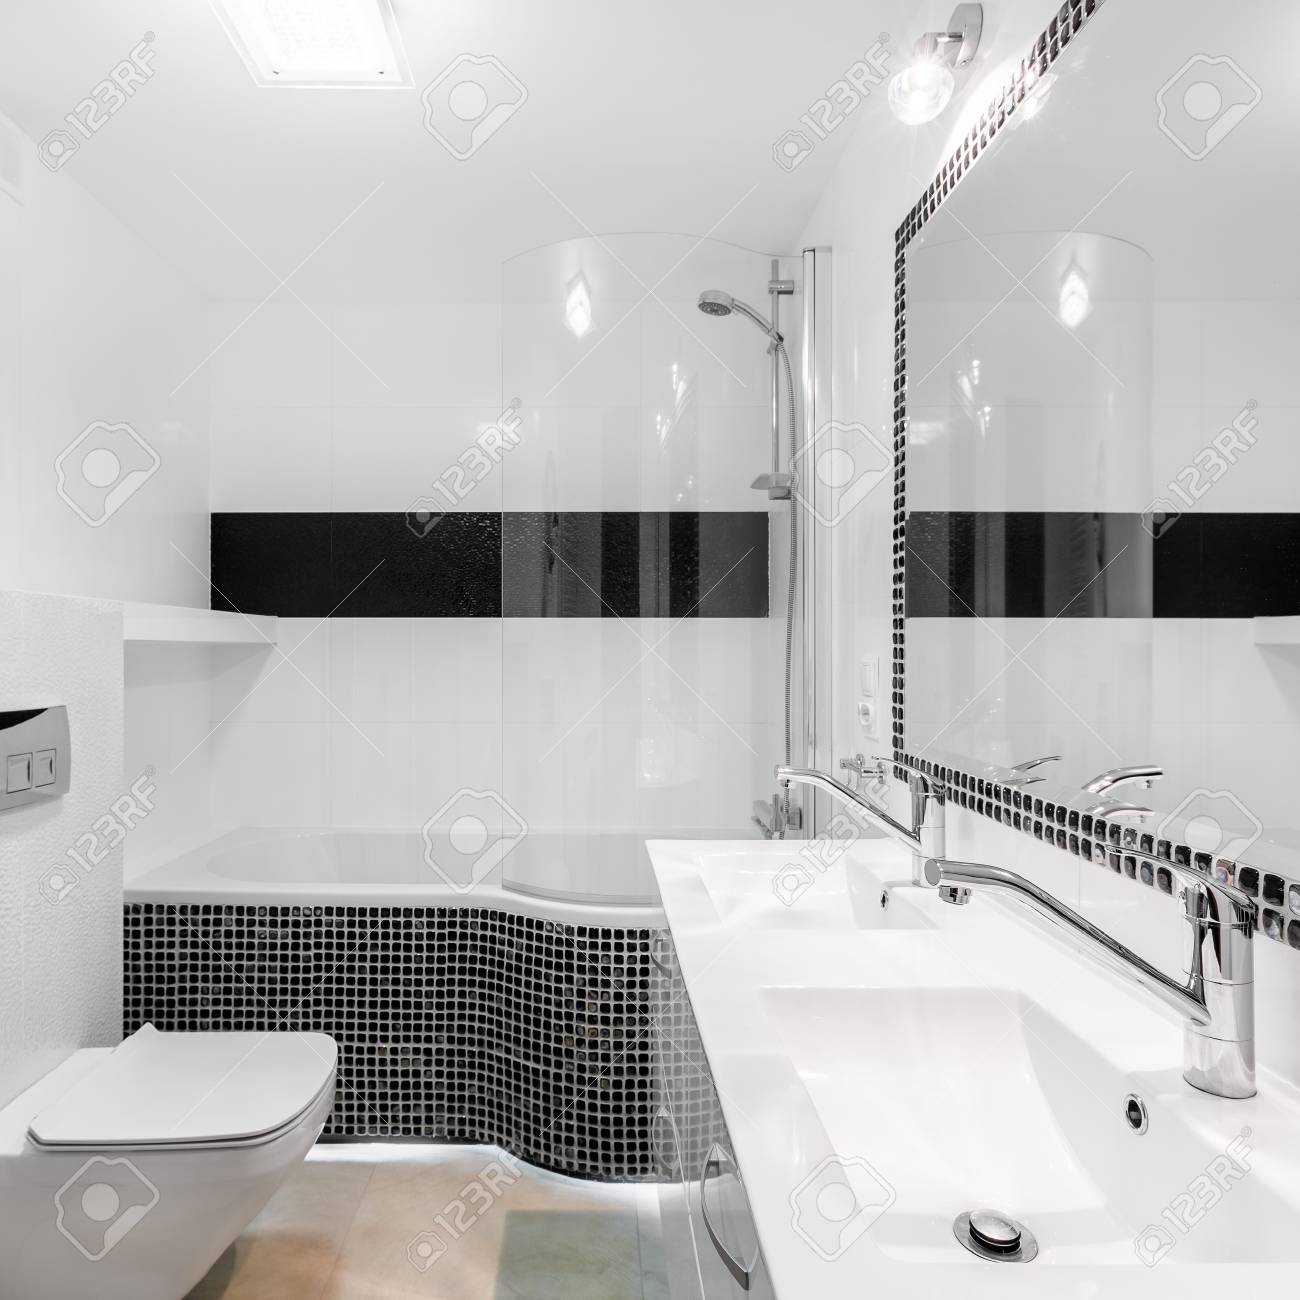 Elegant Bathroom Interior With Modern Black Mosaic Accents And ...